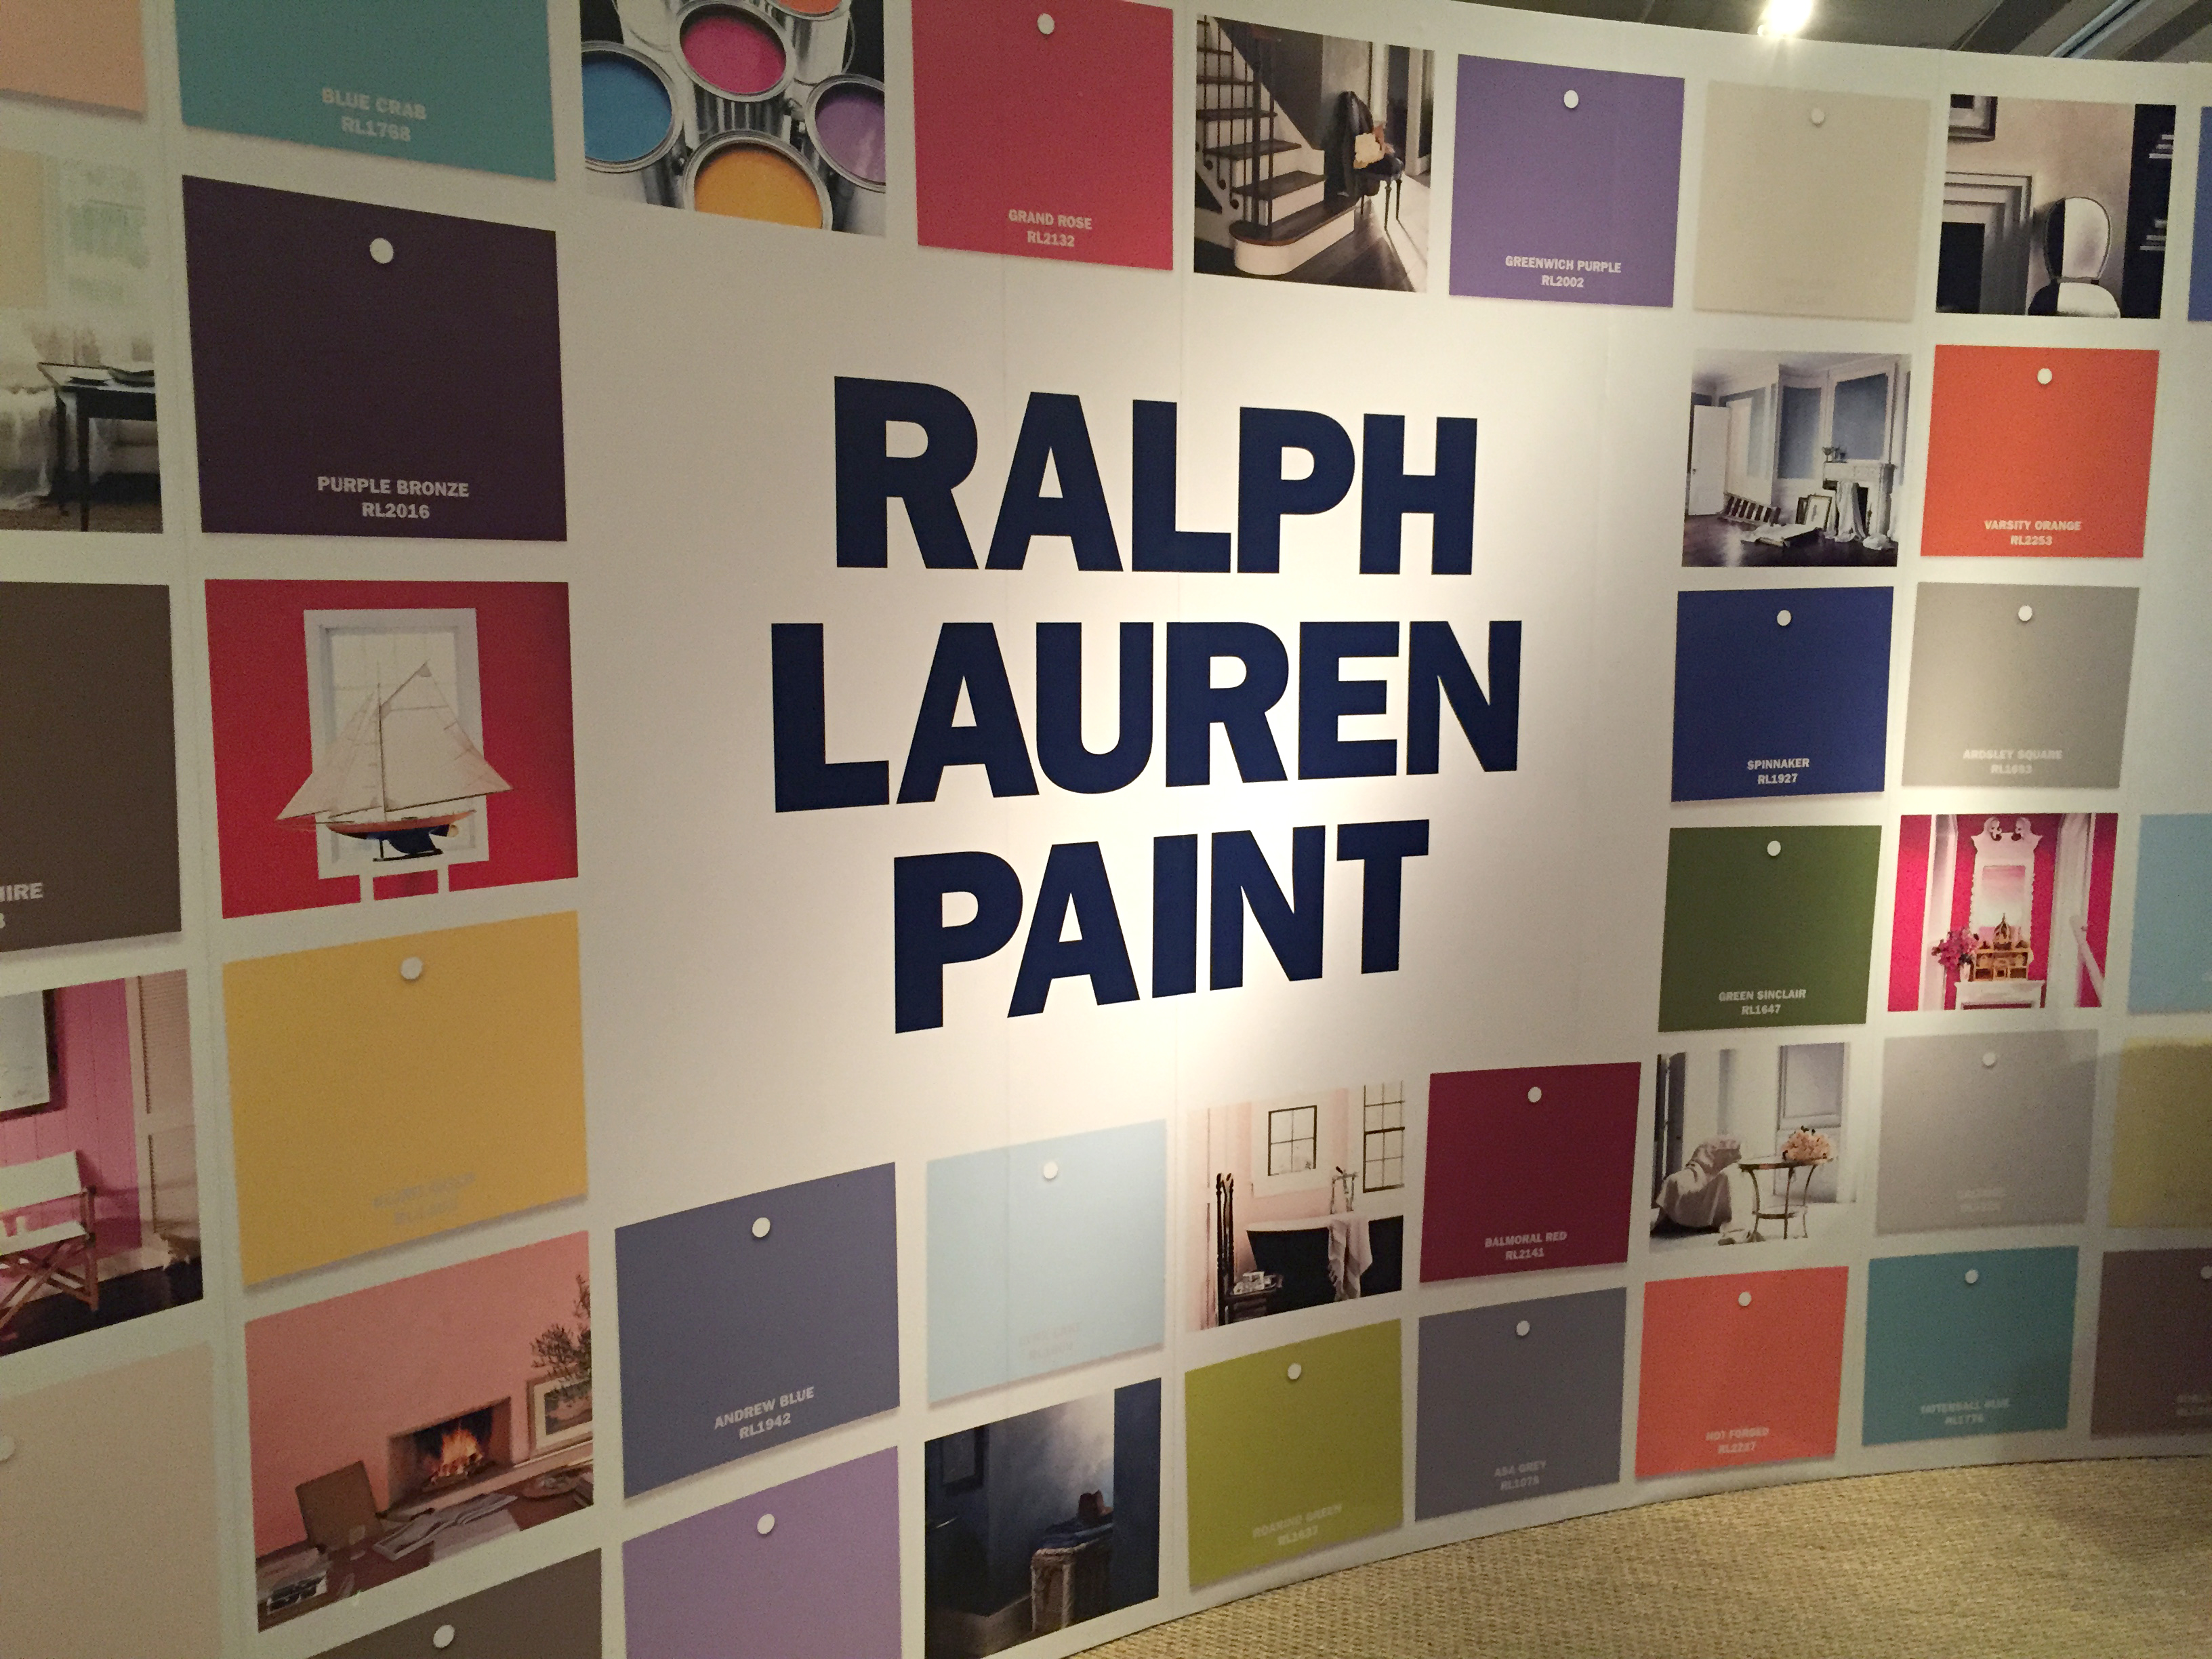 PAINT THE TOWN RALPH